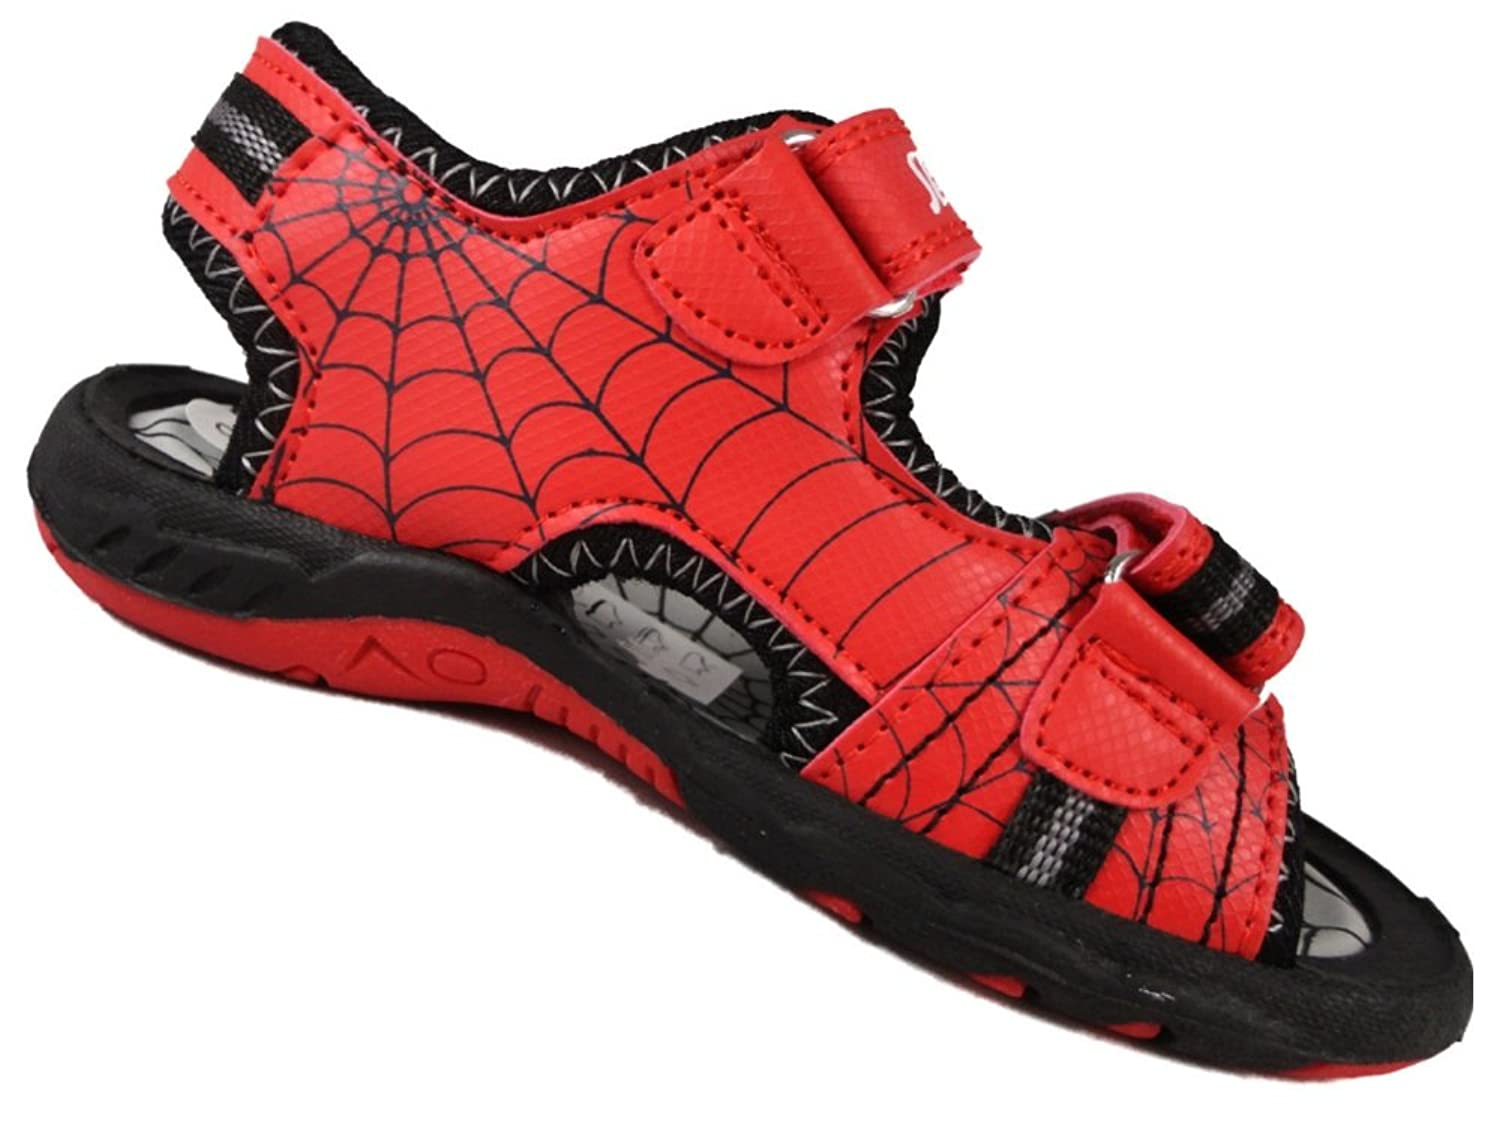 Boys Spiderman Childrens Red Beach Walking Sandal Trainer Shoes Velcro 7-1Uk:  Amazon.co.uk: Shoes & Bags